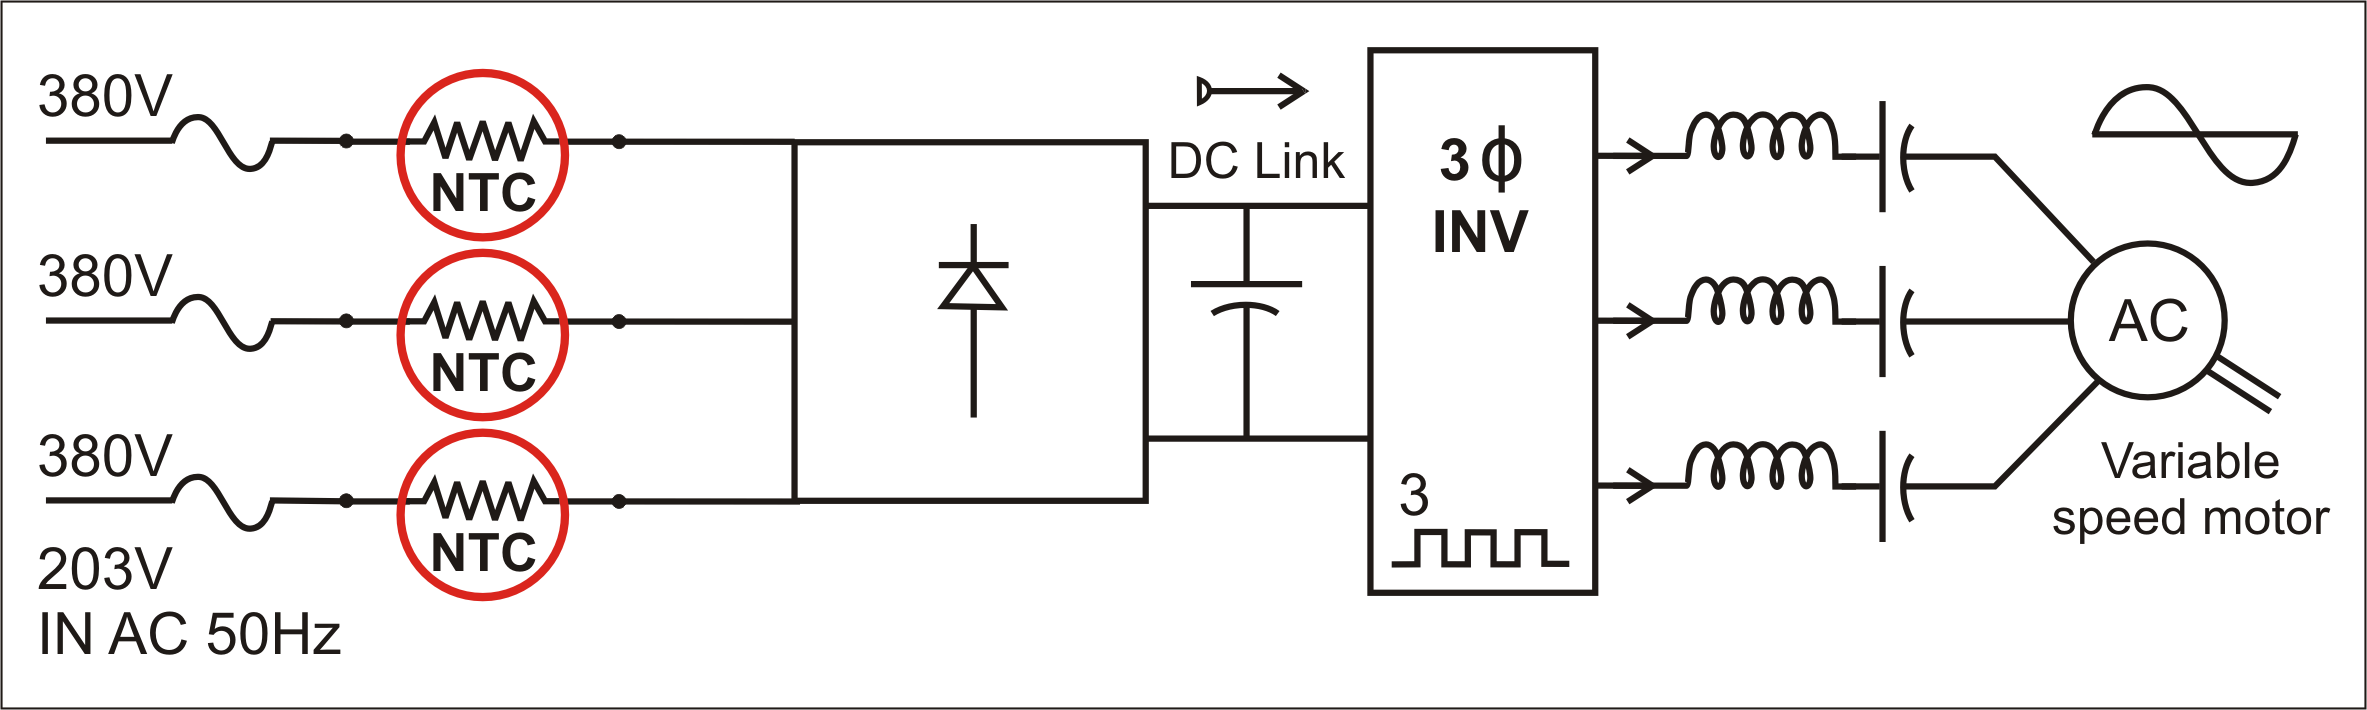 Observing Inrush Current To Avoid Power Conversion Failure likewise 761864 further 10 also Capacitor Inrush Current together with What Is Plc Programmable Logic Controller Industrial Control. on inrush current limiter circuit